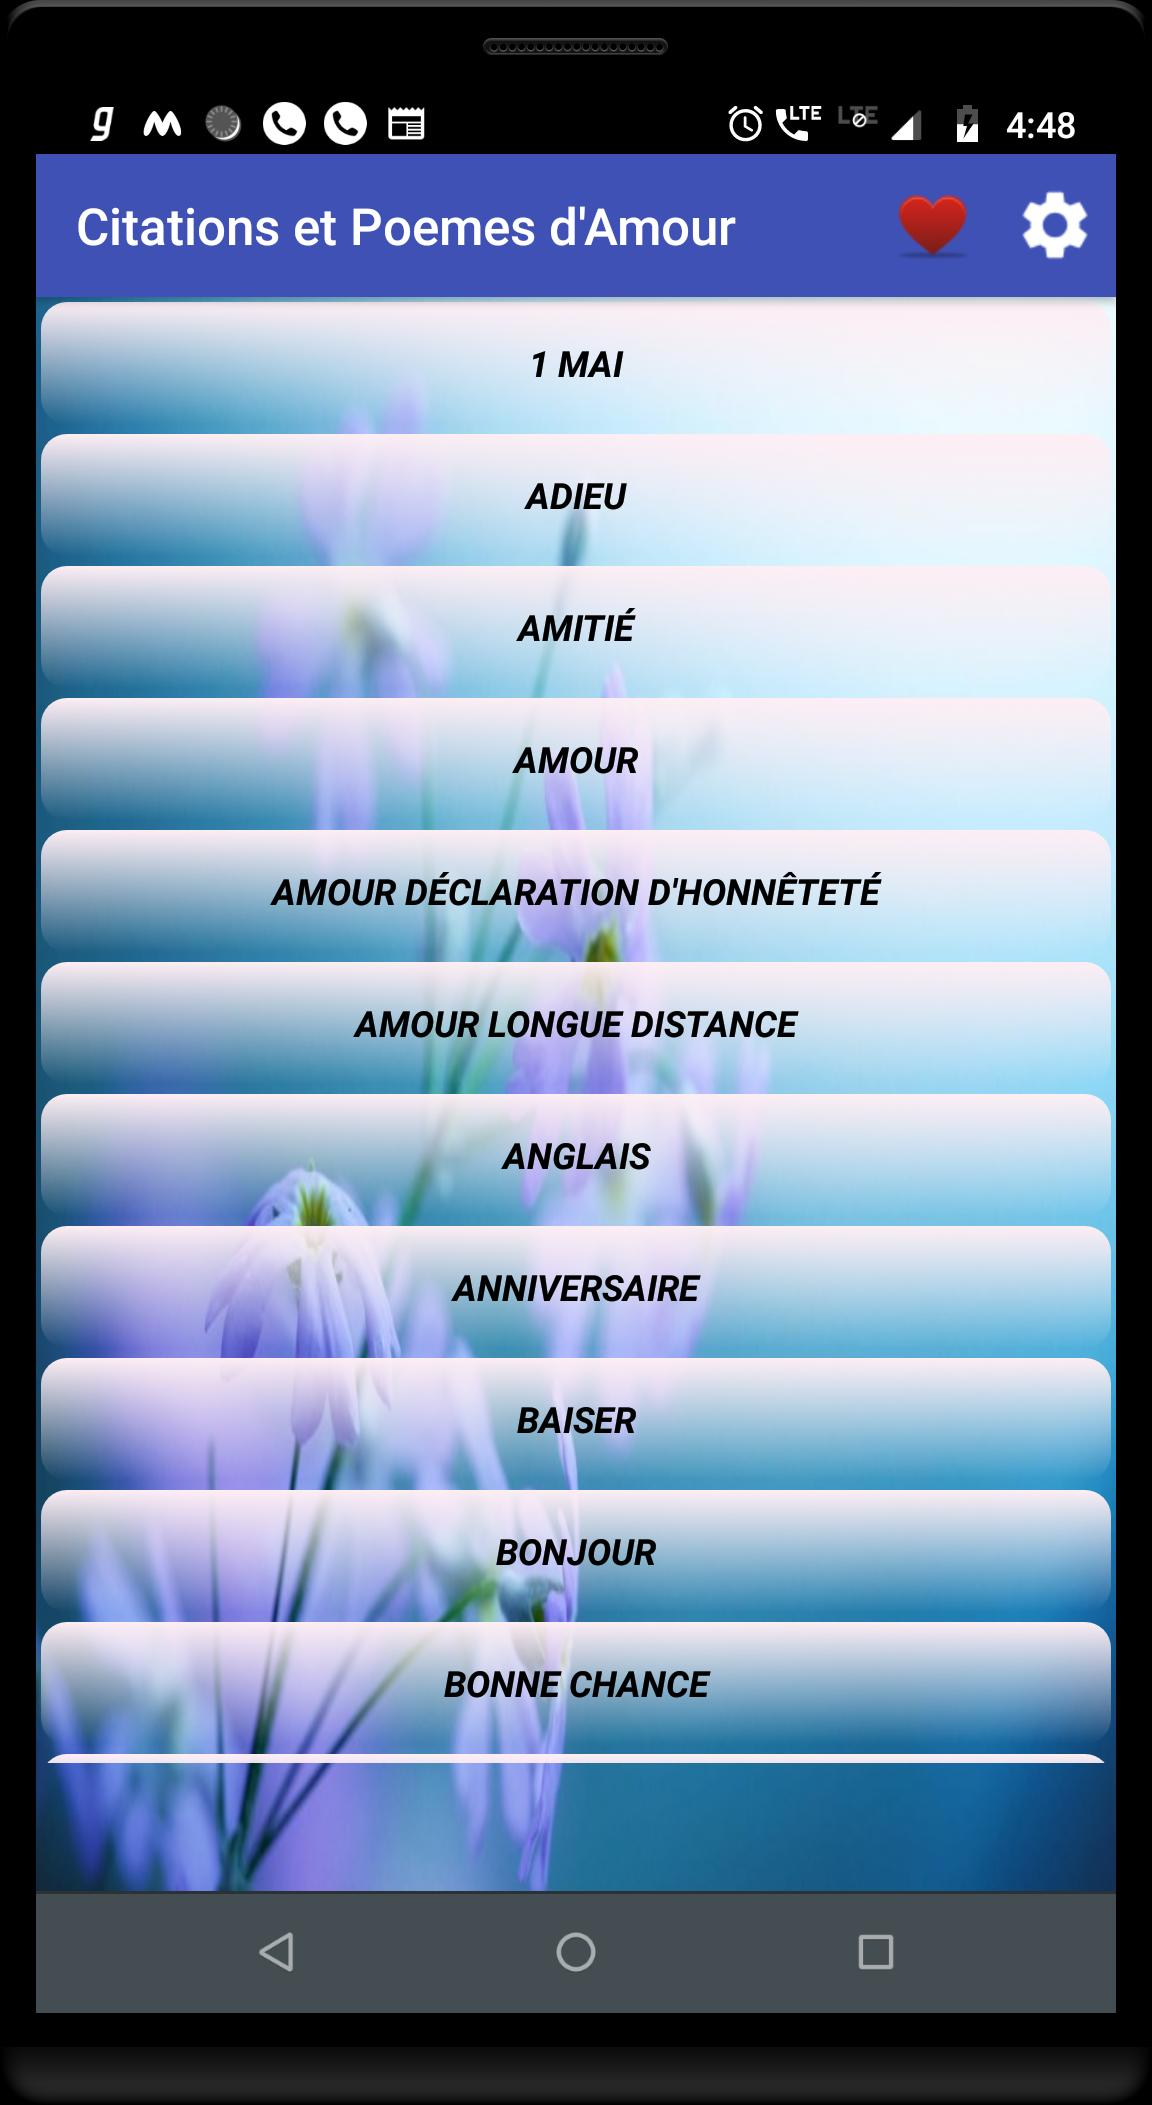 Citations Et Poèmes Damour For Android Apk Download